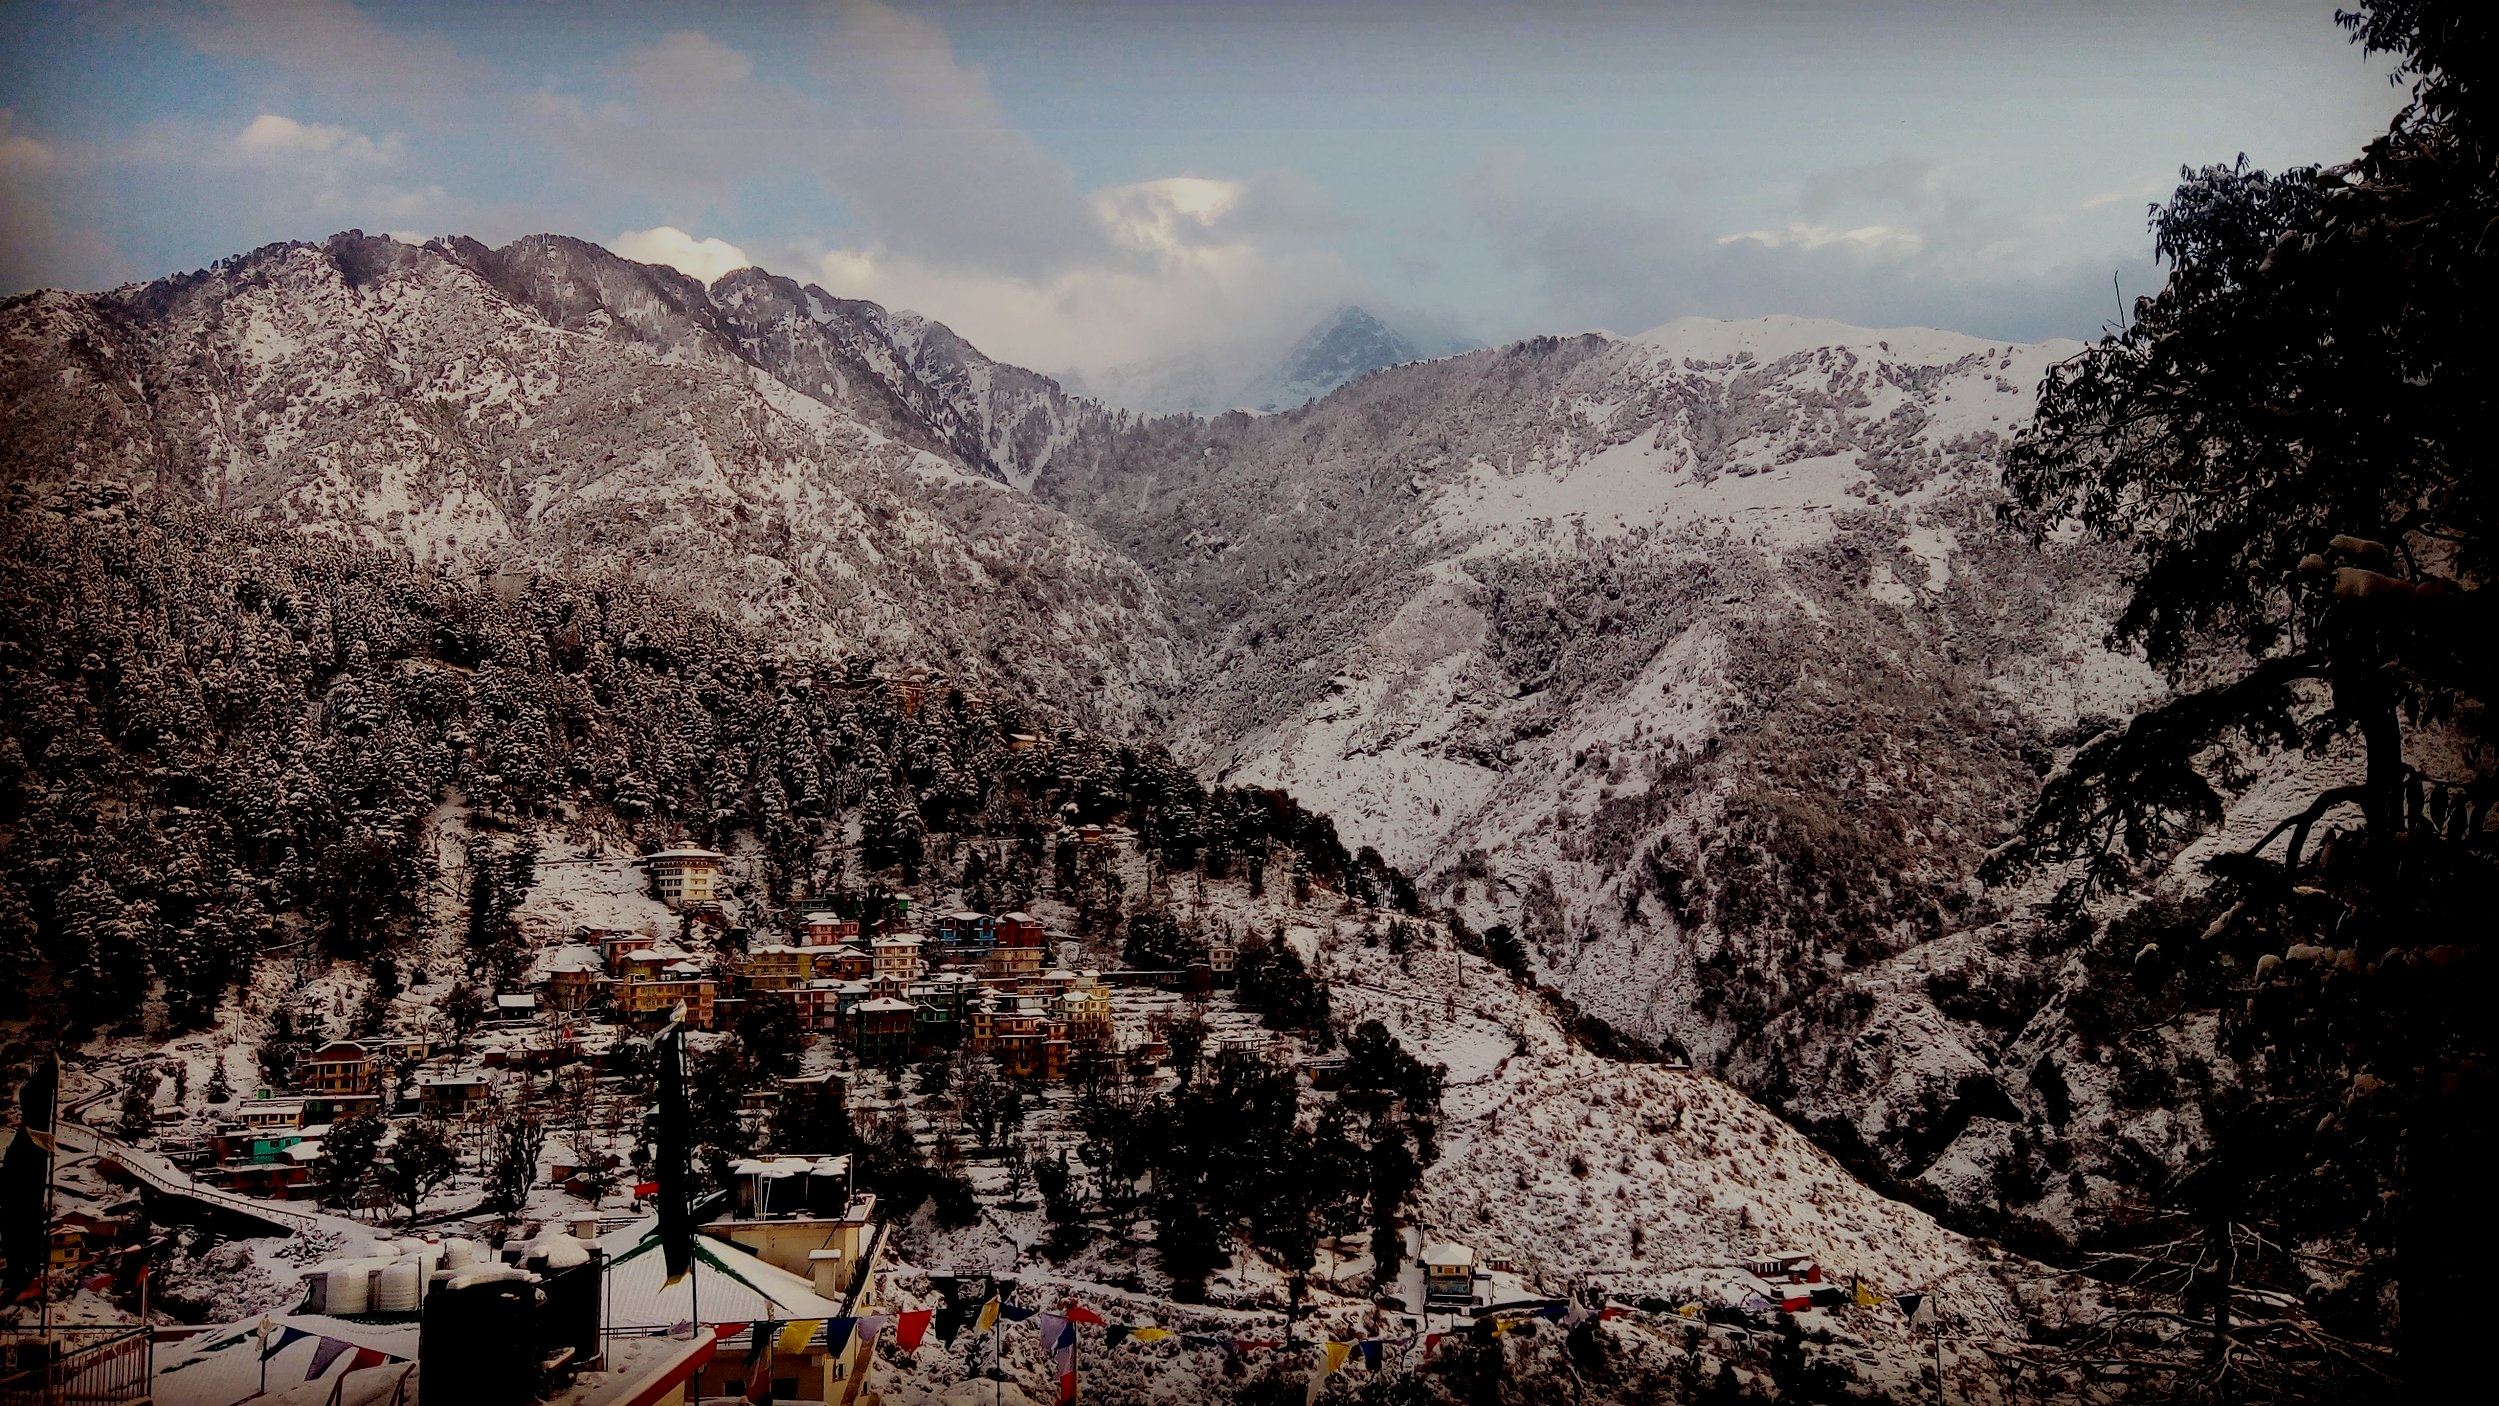 Tibetan Immersion - Immerse yourself in Tibetan language in the foothills of the Himalayas!